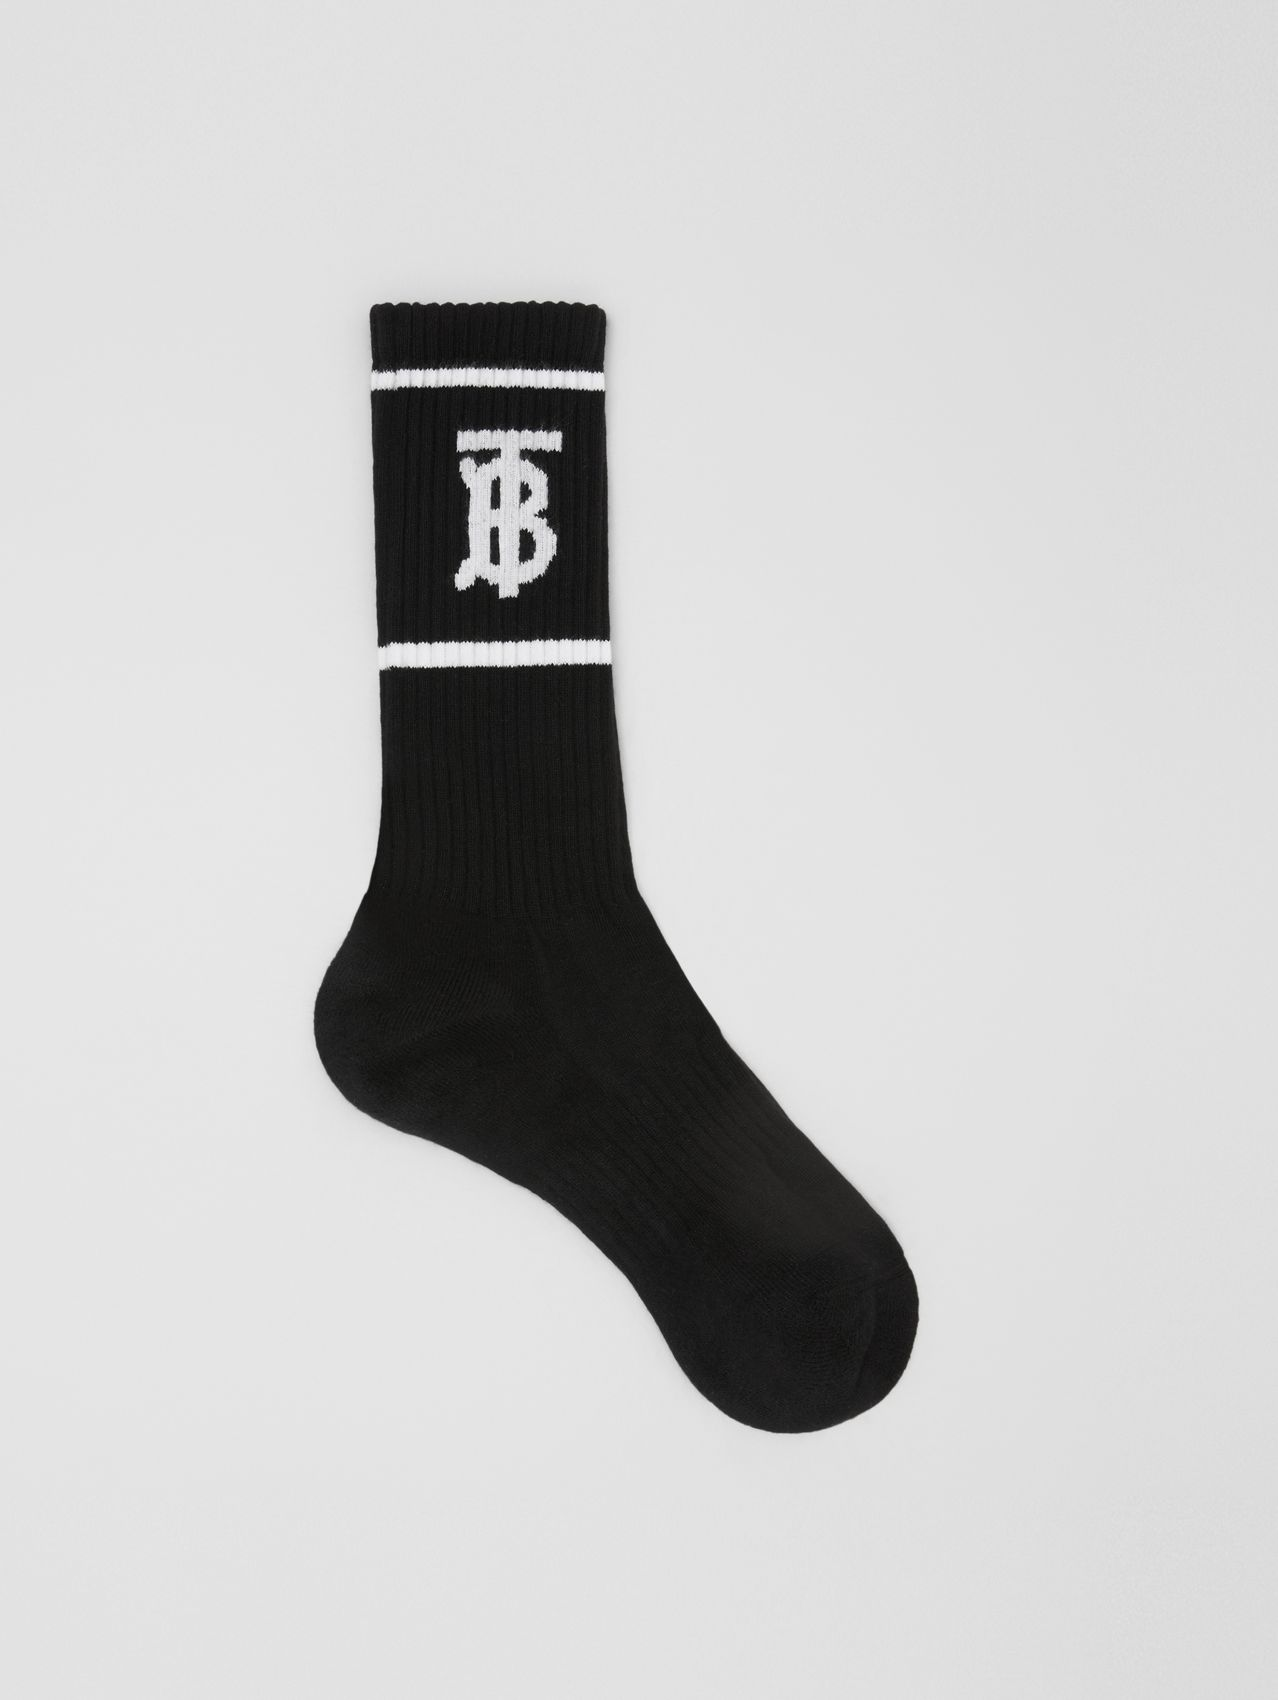 Monogram Motif Intarsia Socks in Black